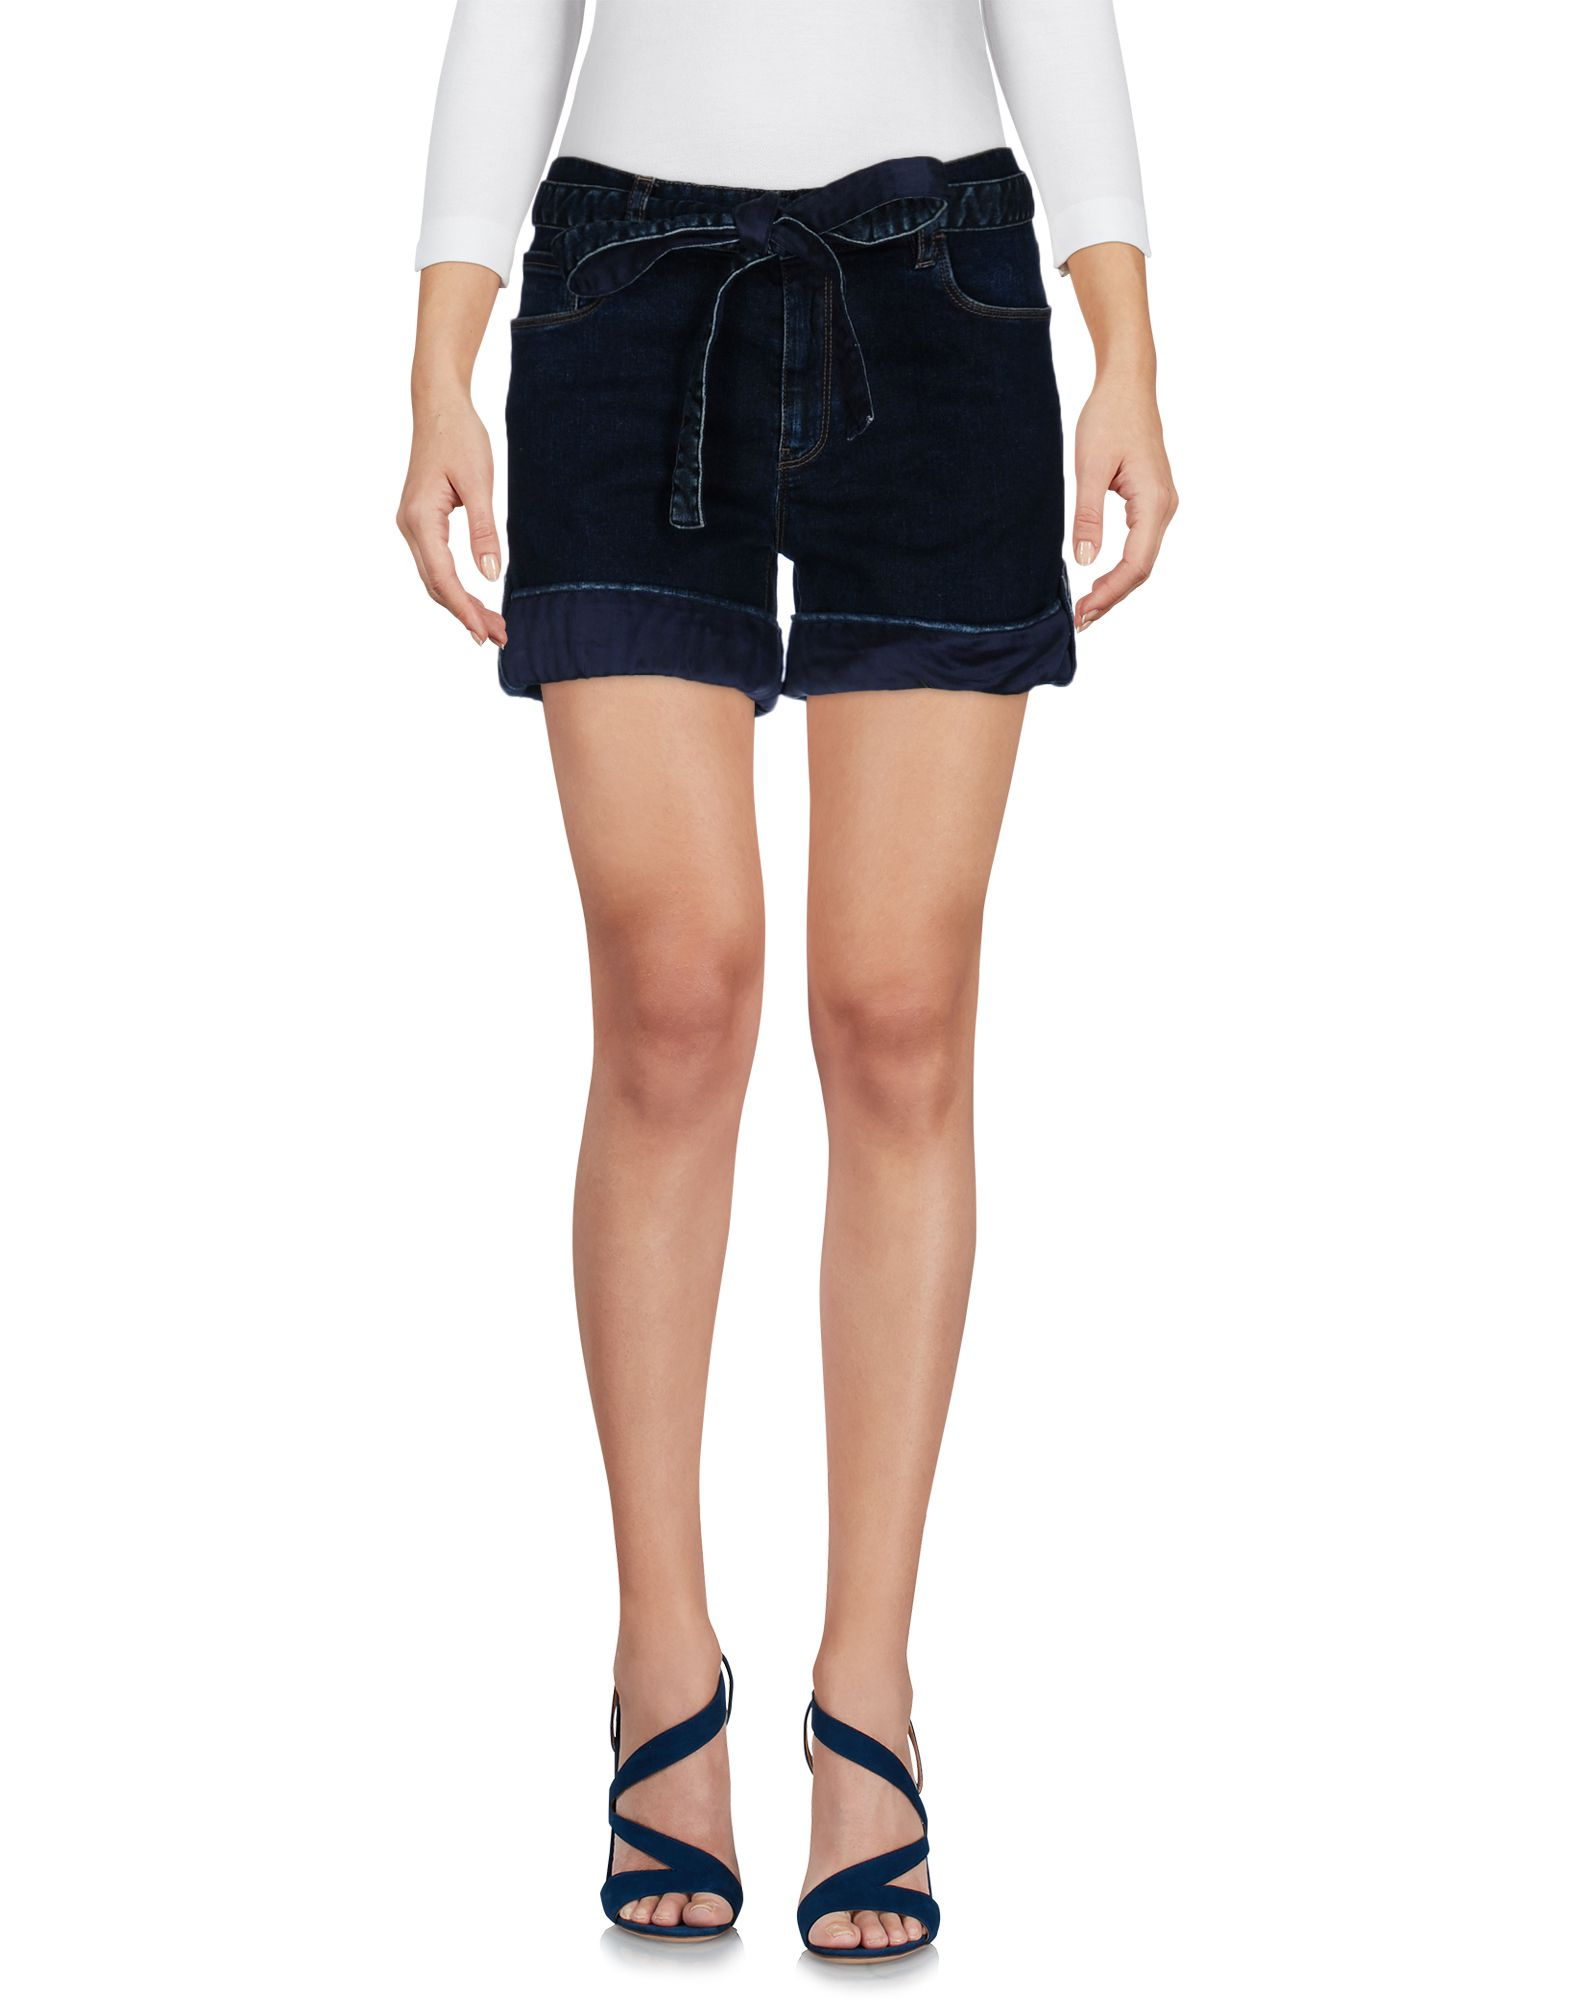 Patchy High Waist Shorts in Black